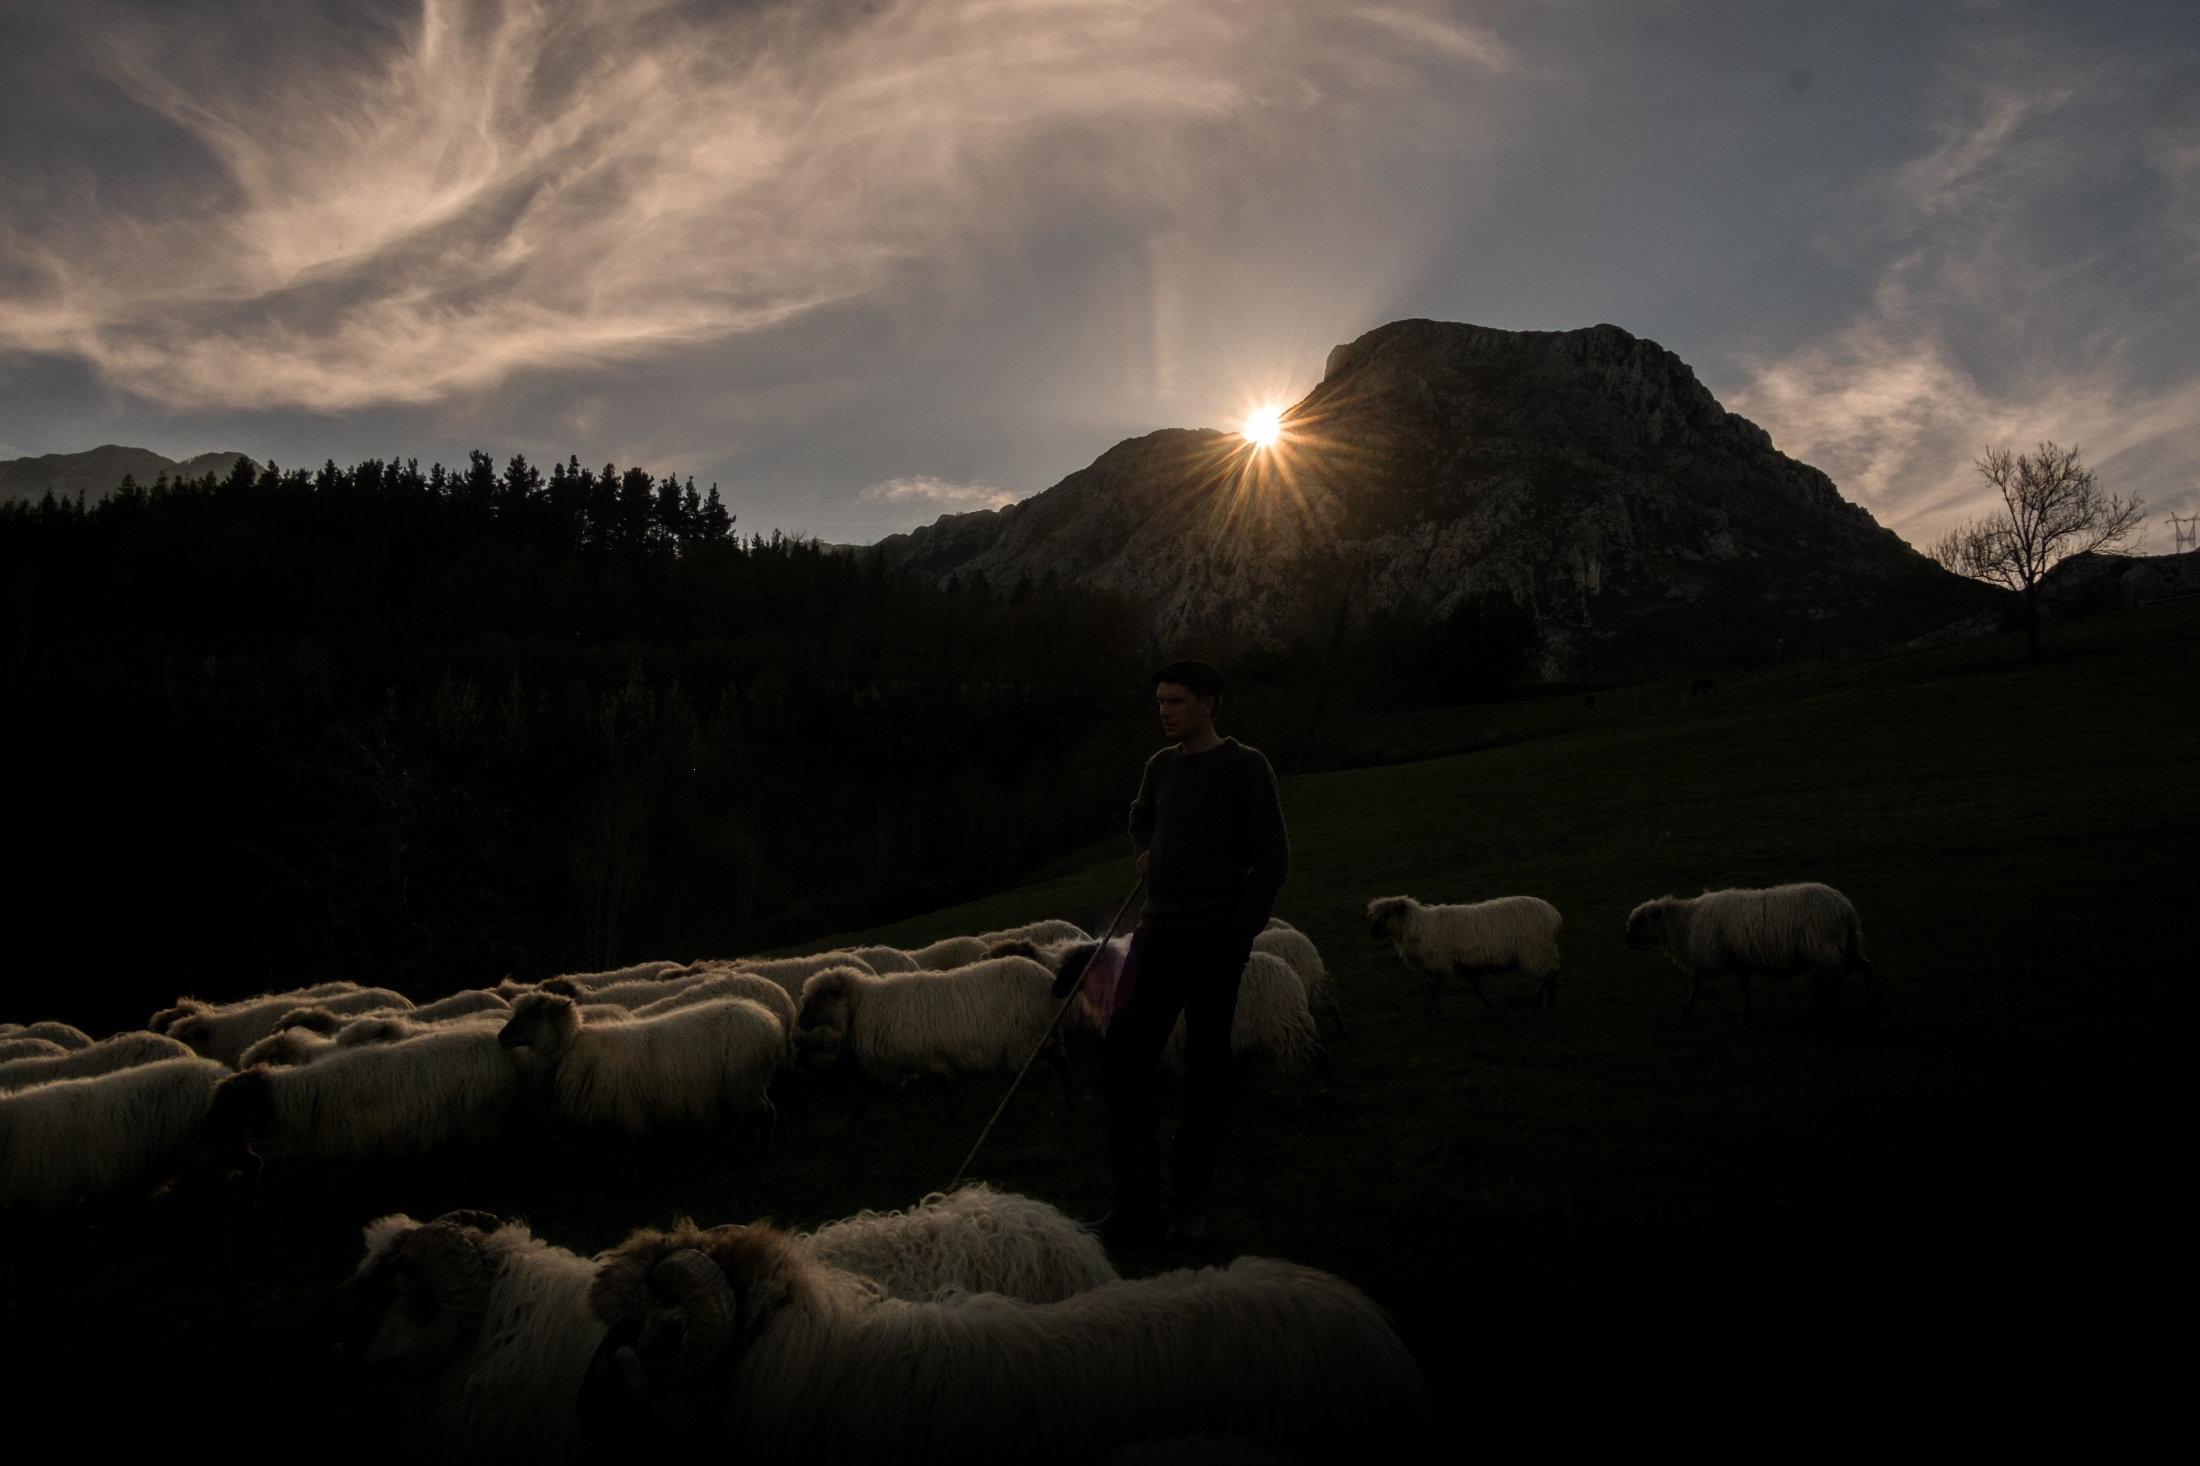 During sunset, he takes the flock of sheep back to the field.